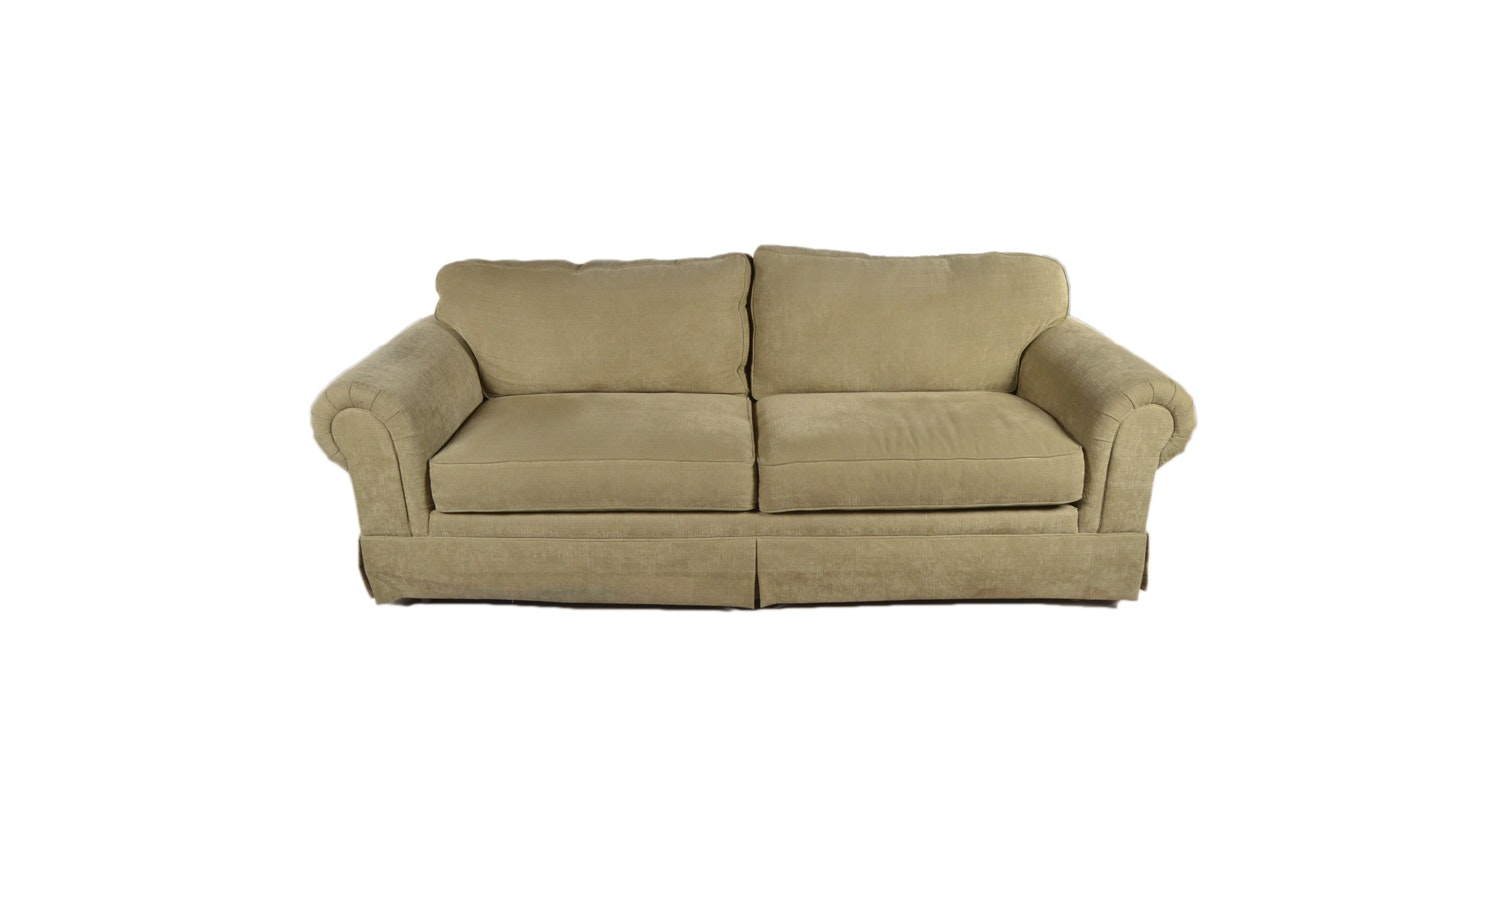 Contemporary Sage Colored Sofa by Norwalk